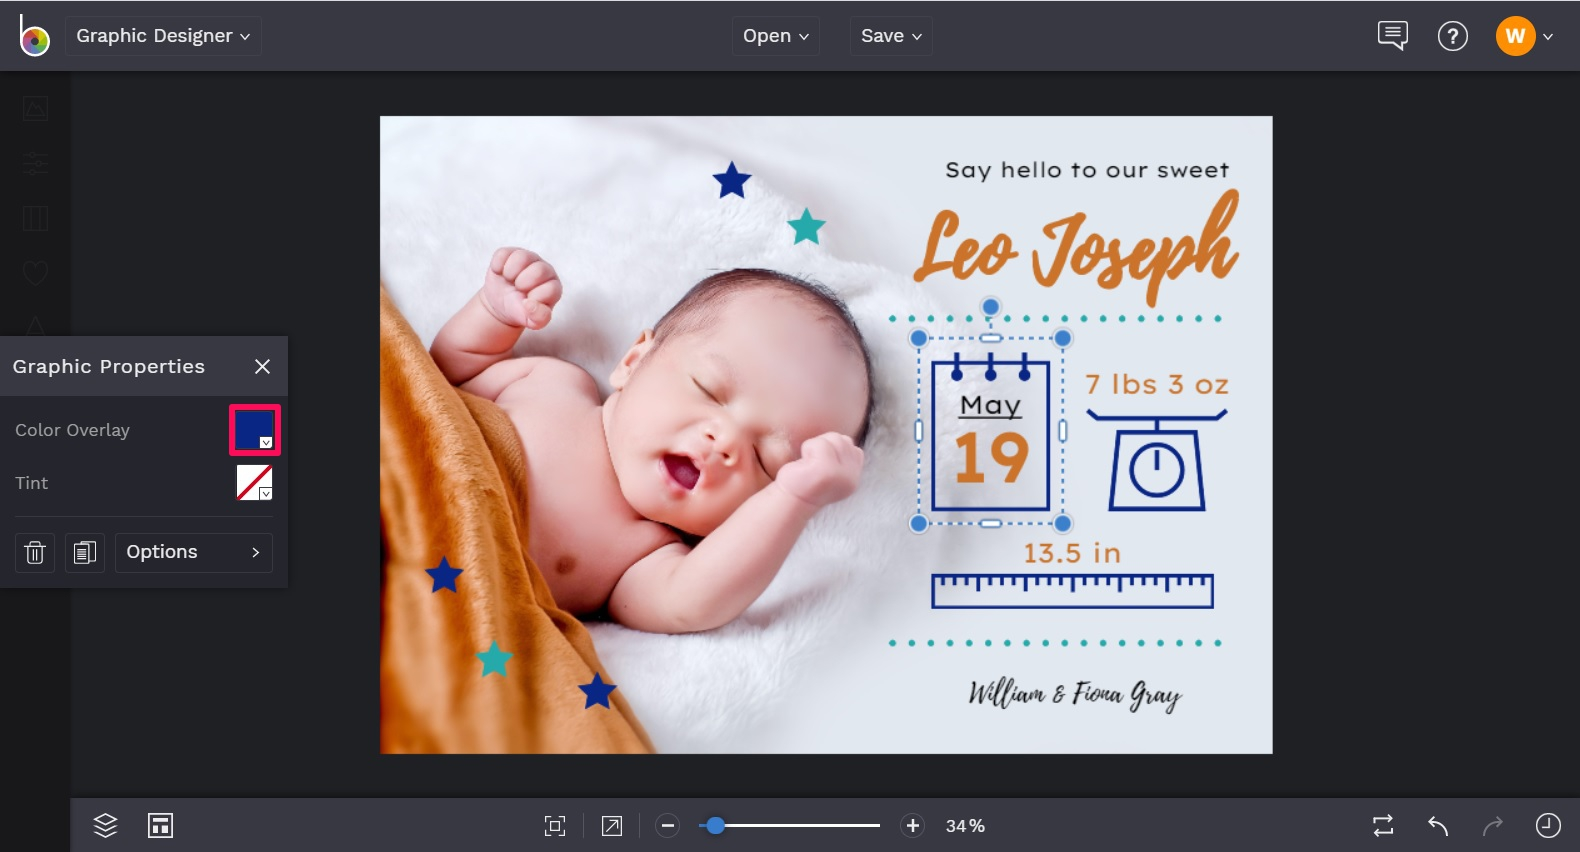 Change the color of graphics in a birth announcement template in BeFUnky designer